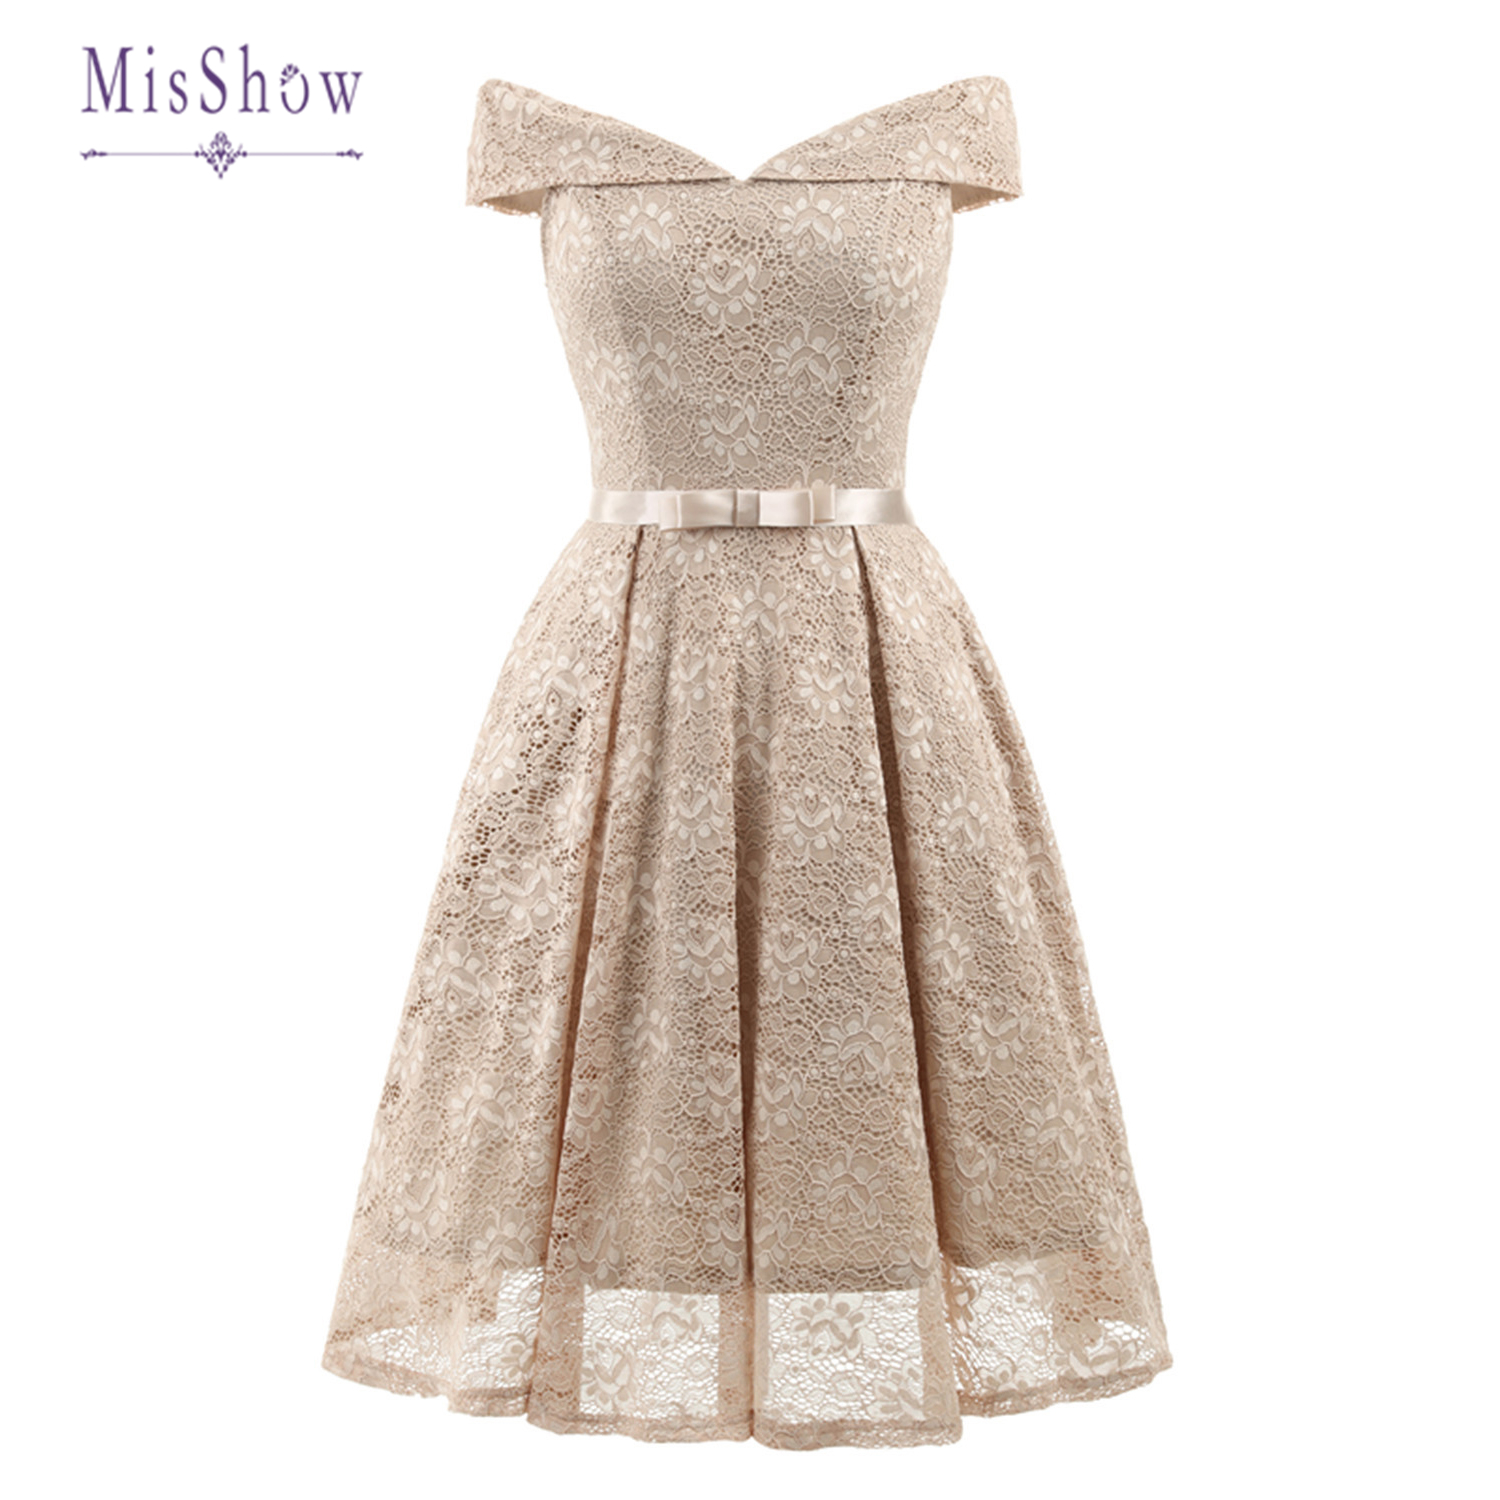 In Stock New Cocktail Dresses Floral Lace Retro Robe Vintage Rockabilly Plus Size Party Dress Prom Homecoming Dresses 2020